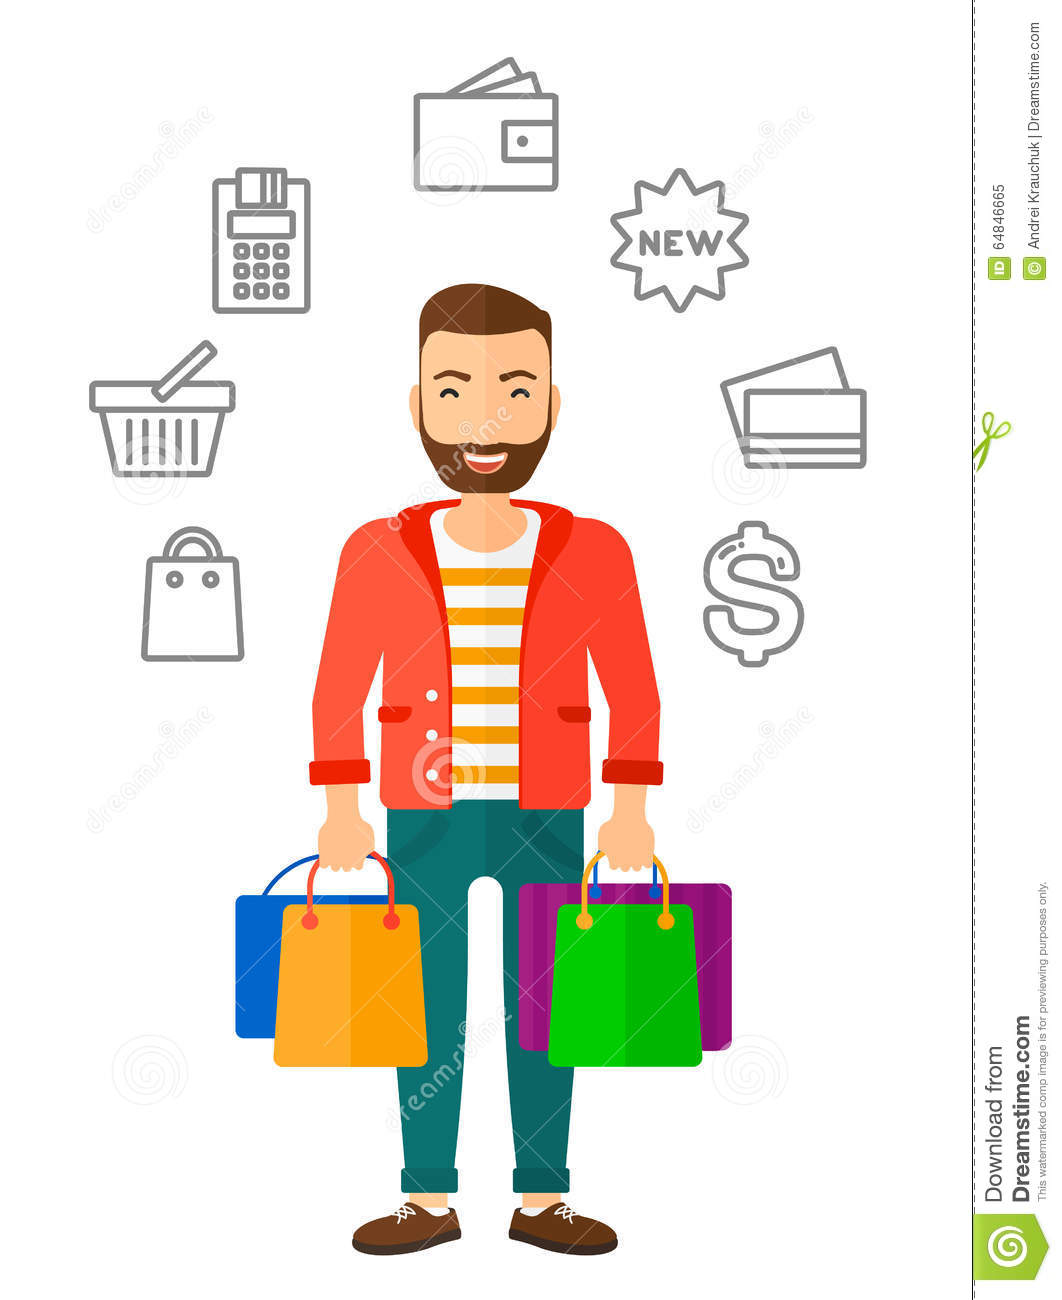 Happy Customer With Bags Stock Vector - Image: 64846665